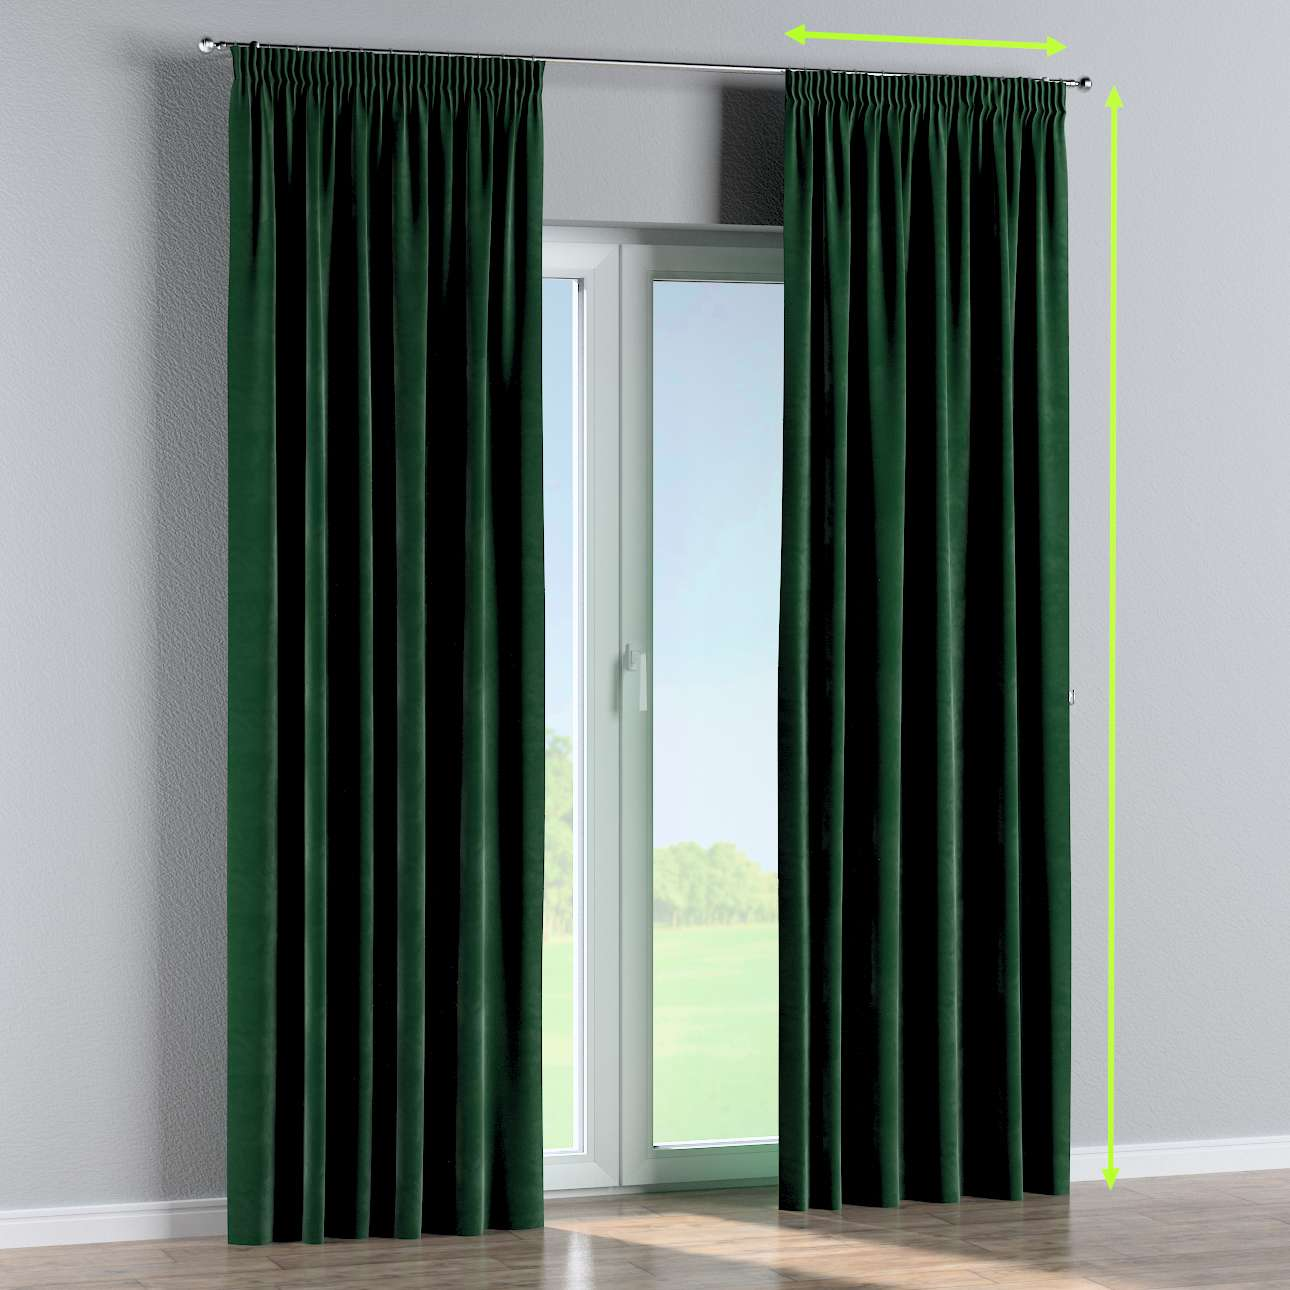 Pencil pleat lined curtains in collection Velvet, fabric: 704-13